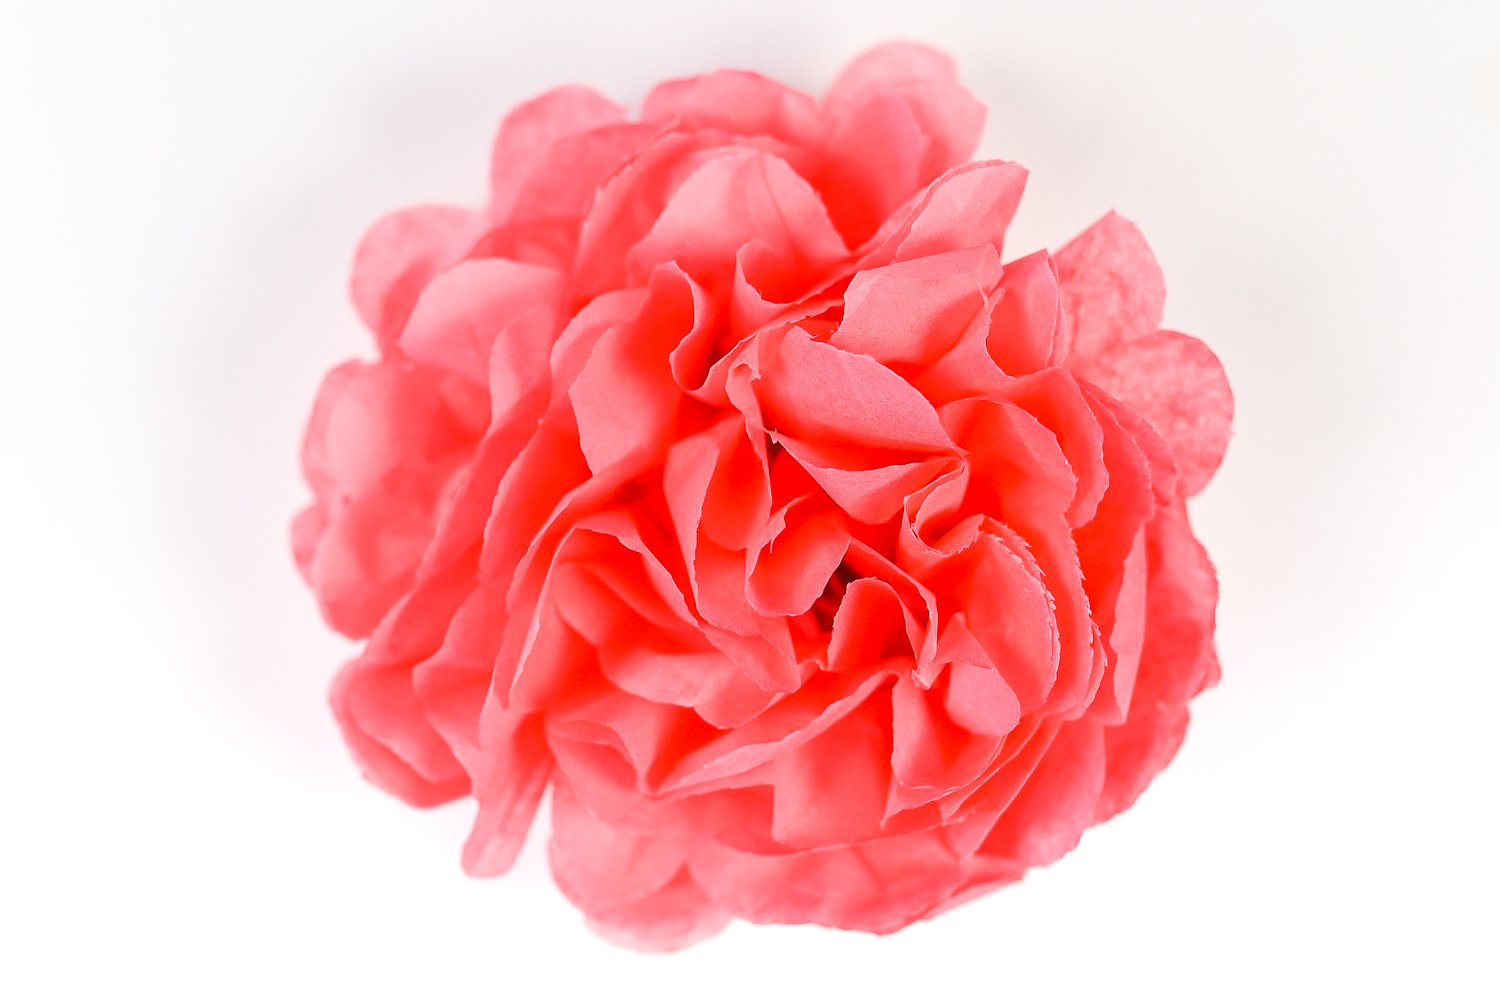 Finished Tissue paper flower to make a gorgeous event decor